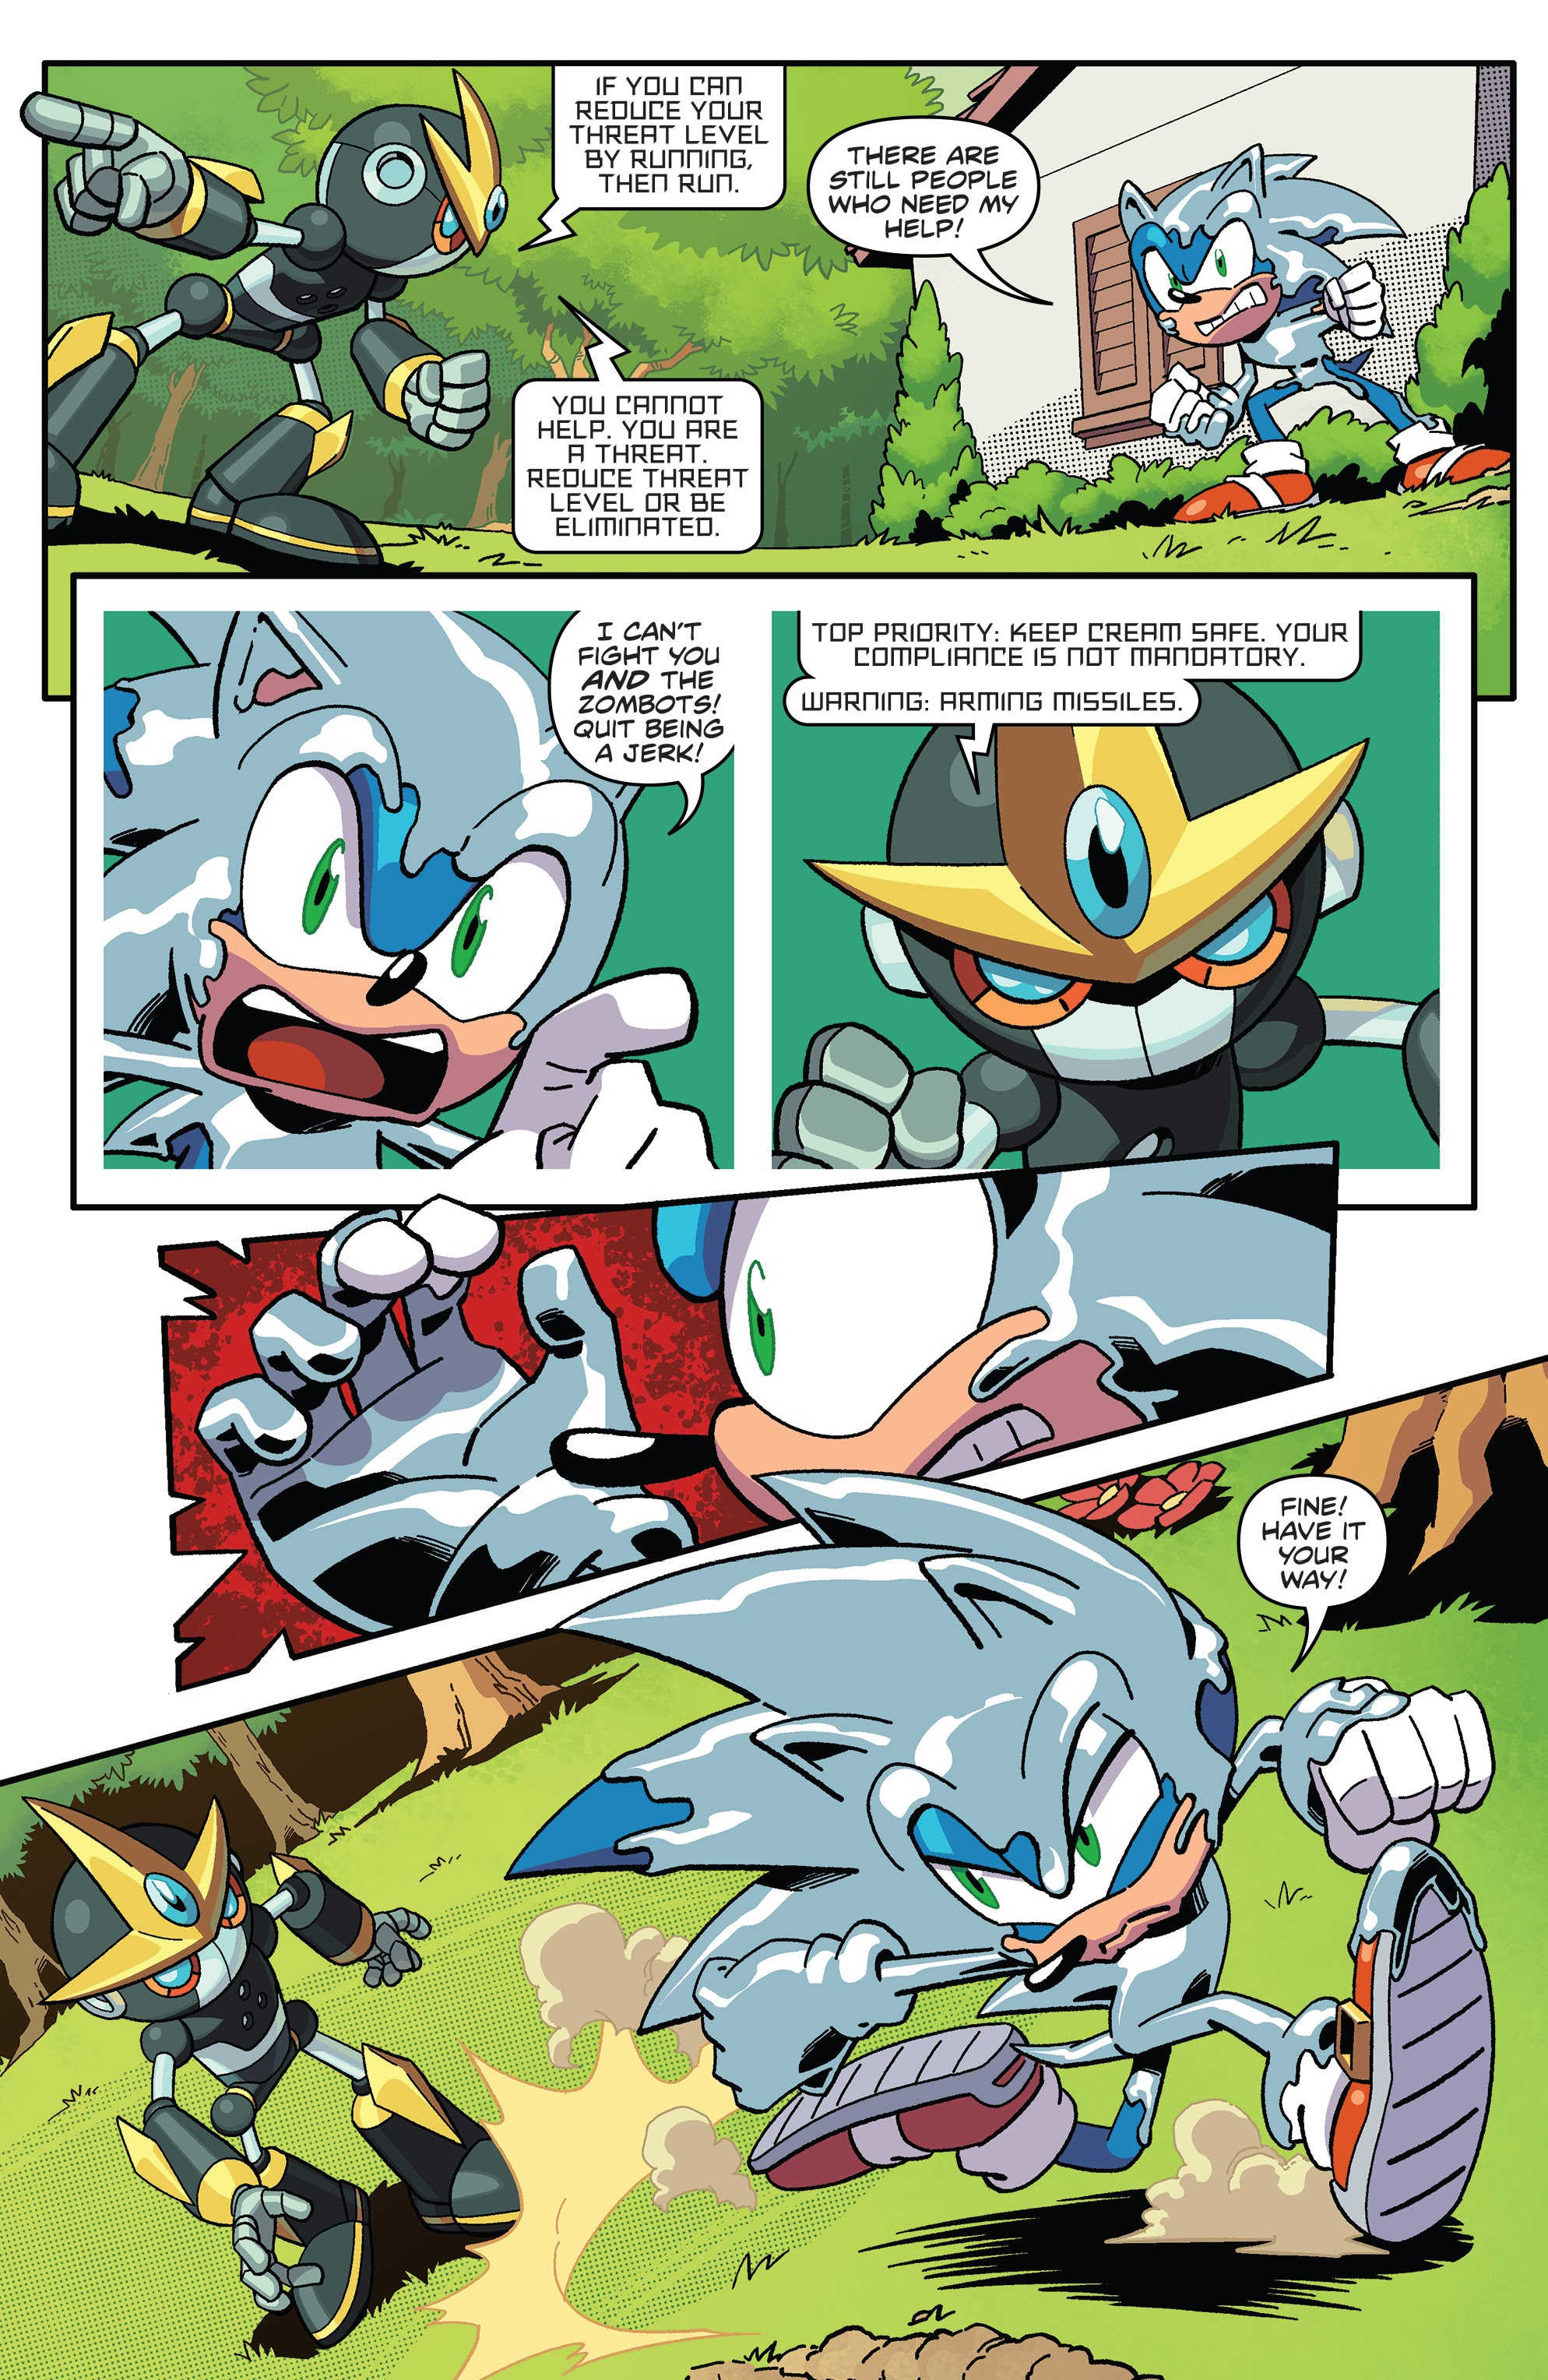 Read Online Sonic The Hedgehog 2018 Comic Issue 18